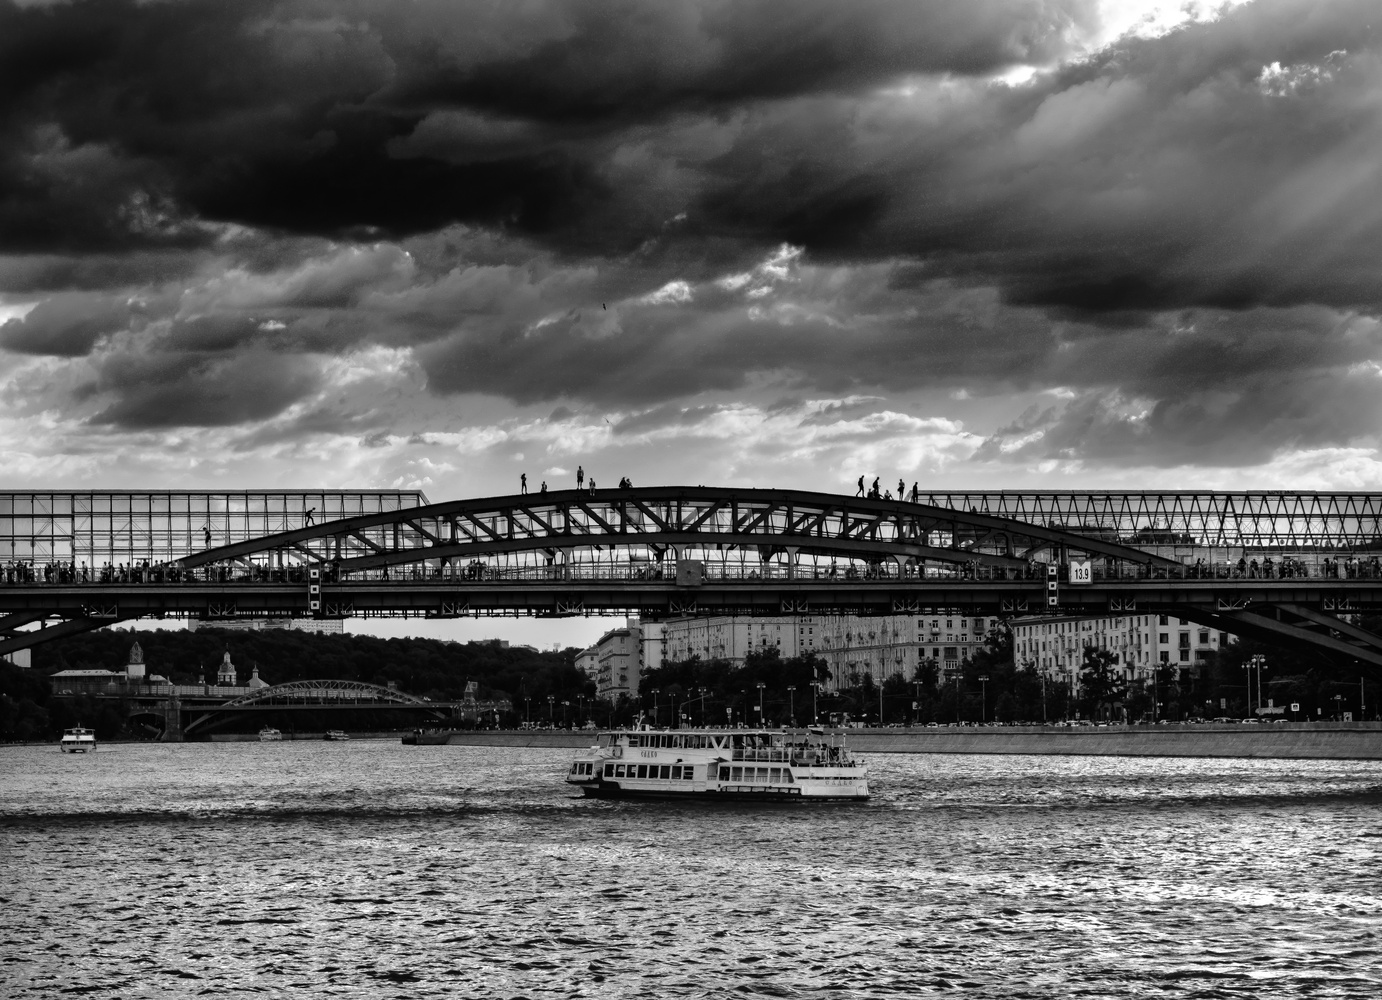 Bridge Climbers by andrew audley